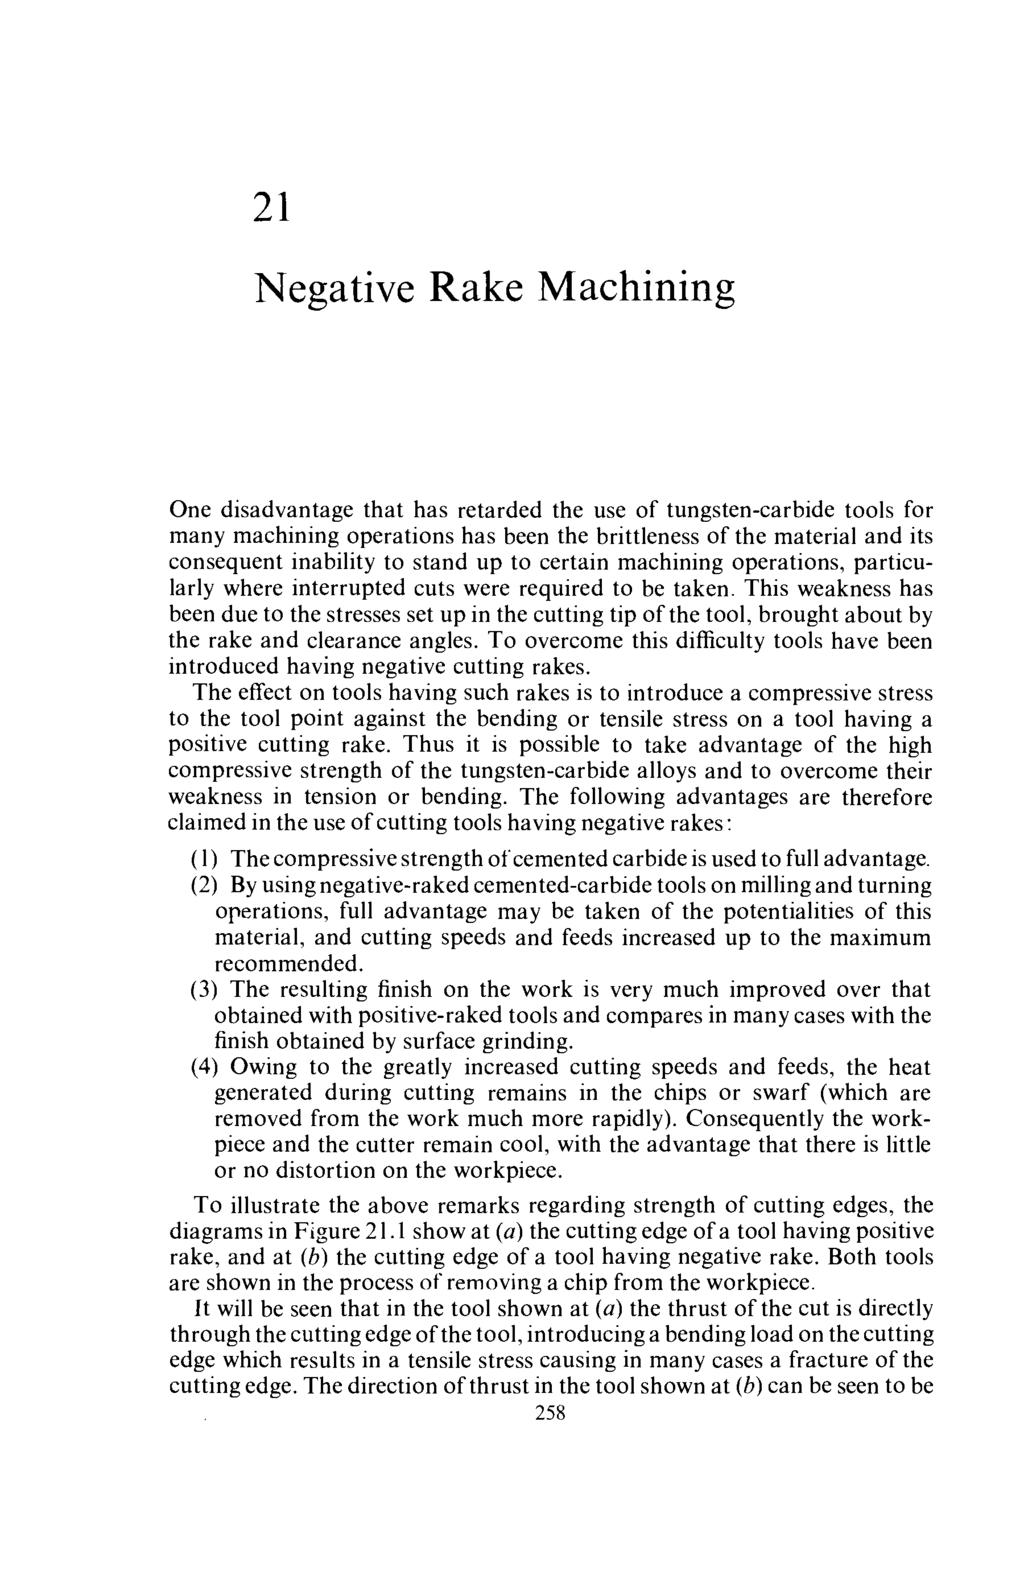 21 Negative Rake Machining One disadvantage that has retarded the use of tungsten-carbide tools for many machining operations has been the brittleness of the material and its consequent inability to